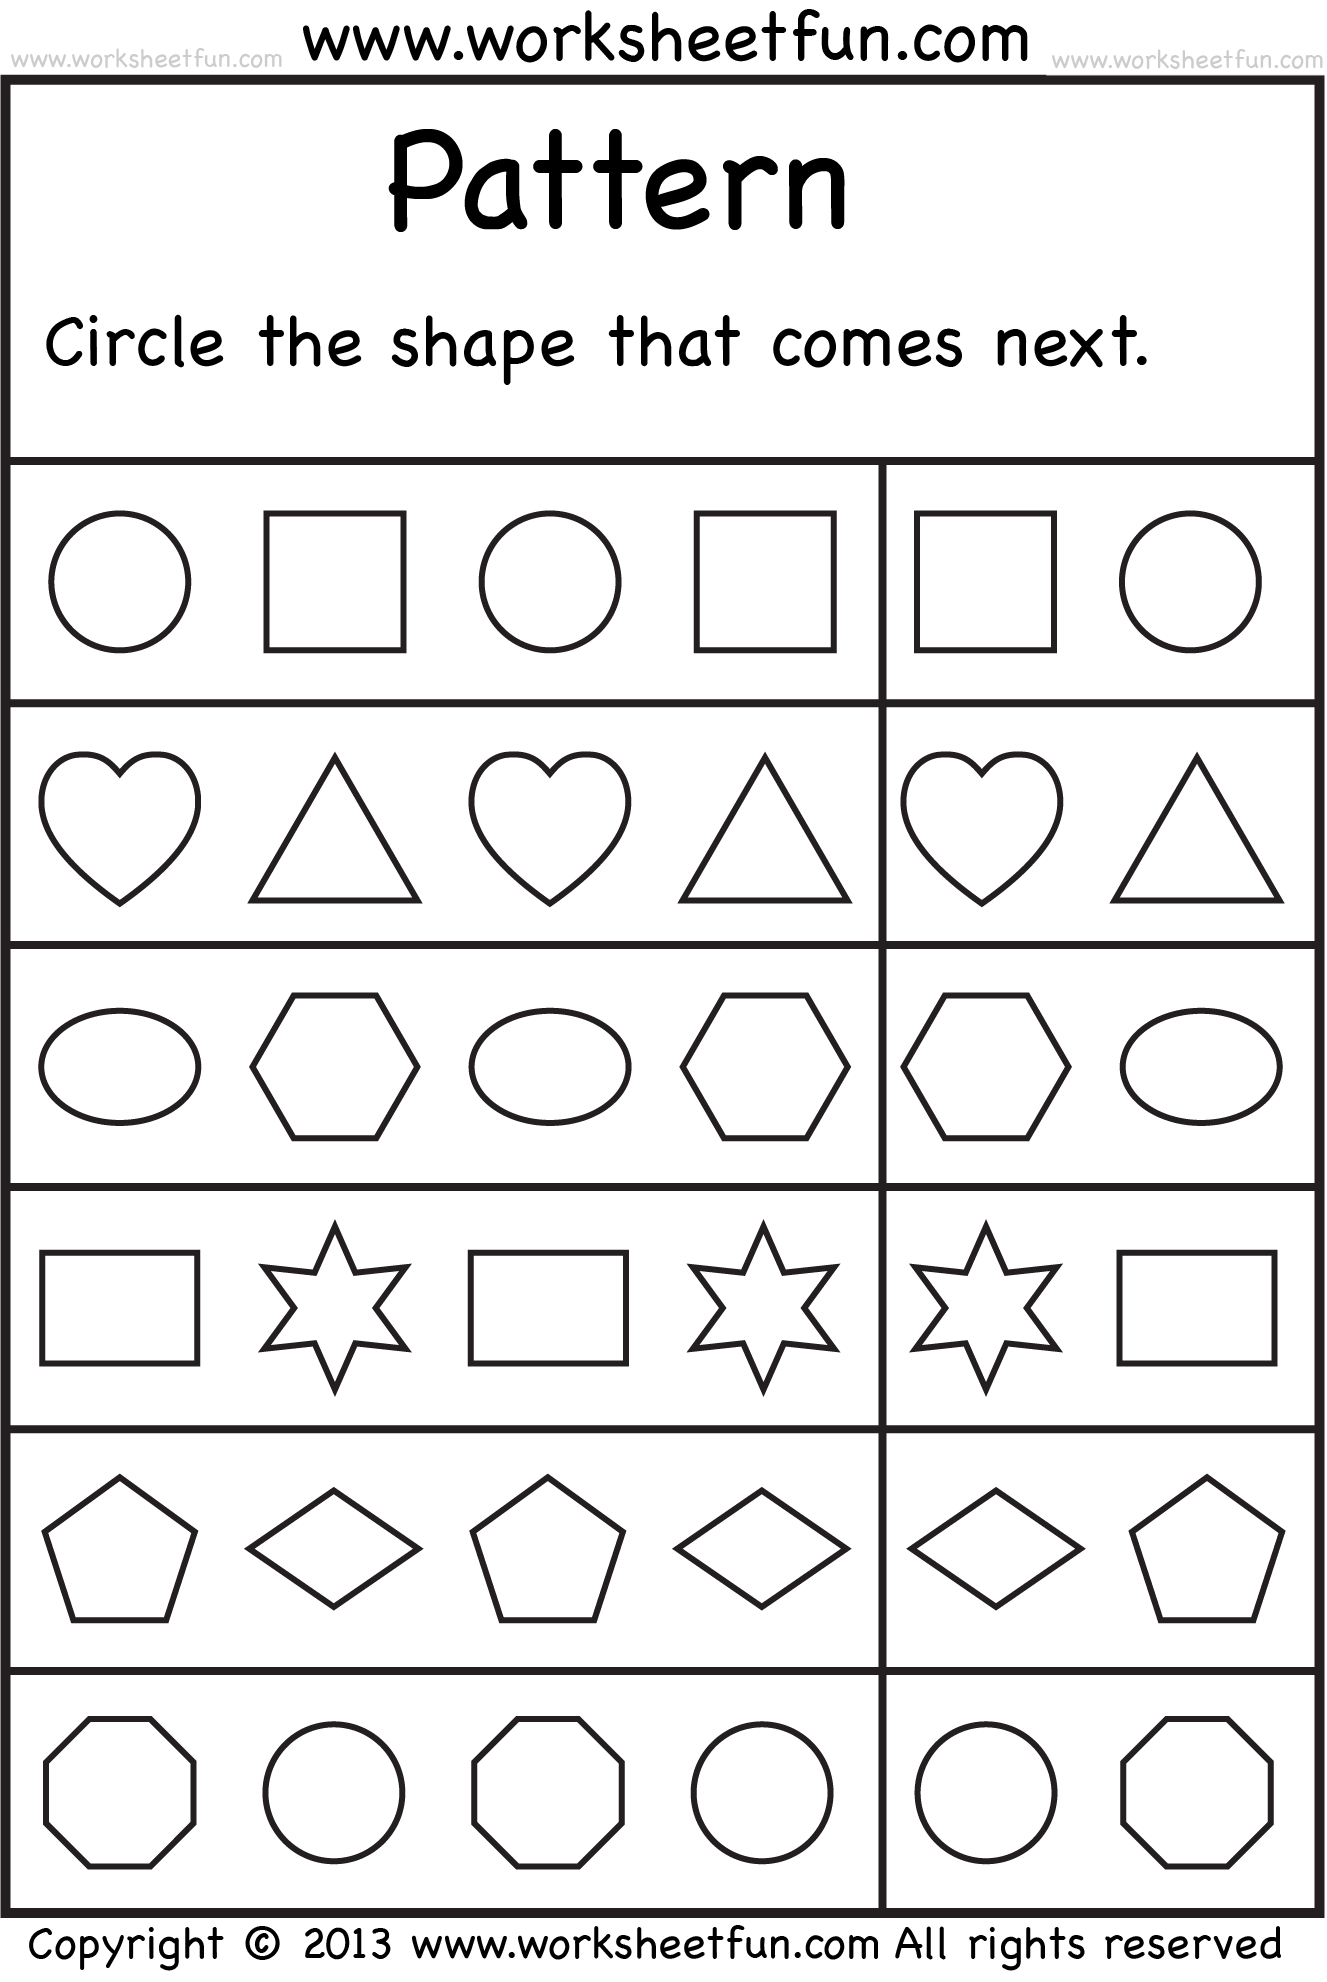 Weirdmailus  Gorgeous  Images About School Worksheets On Pinterest  Number Words  With Hot  Images About School Worksheets On Pinterest  Number Words Alphabet Worksheets And Free Printable Kindergarten Worksheets With Alluring Percentage Worksheets Year  Also Areas And Perimeters Worksheets In Addition Adverbs Of Manner Worksheet And Year  Literacy Worksheets As Well As King Tut Worksheets Additionally Math Functions Worksheets From Pinterestcom With Weirdmailus  Hot  Images About School Worksheets On Pinterest  Number Words  With Alluring  Images About School Worksheets On Pinterest  Number Words Alphabet Worksheets And Free Printable Kindergarten Worksheets And Gorgeous Percentage Worksheets Year  Also Areas And Perimeters Worksheets In Addition Adverbs Of Manner Worksheet From Pinterestcom